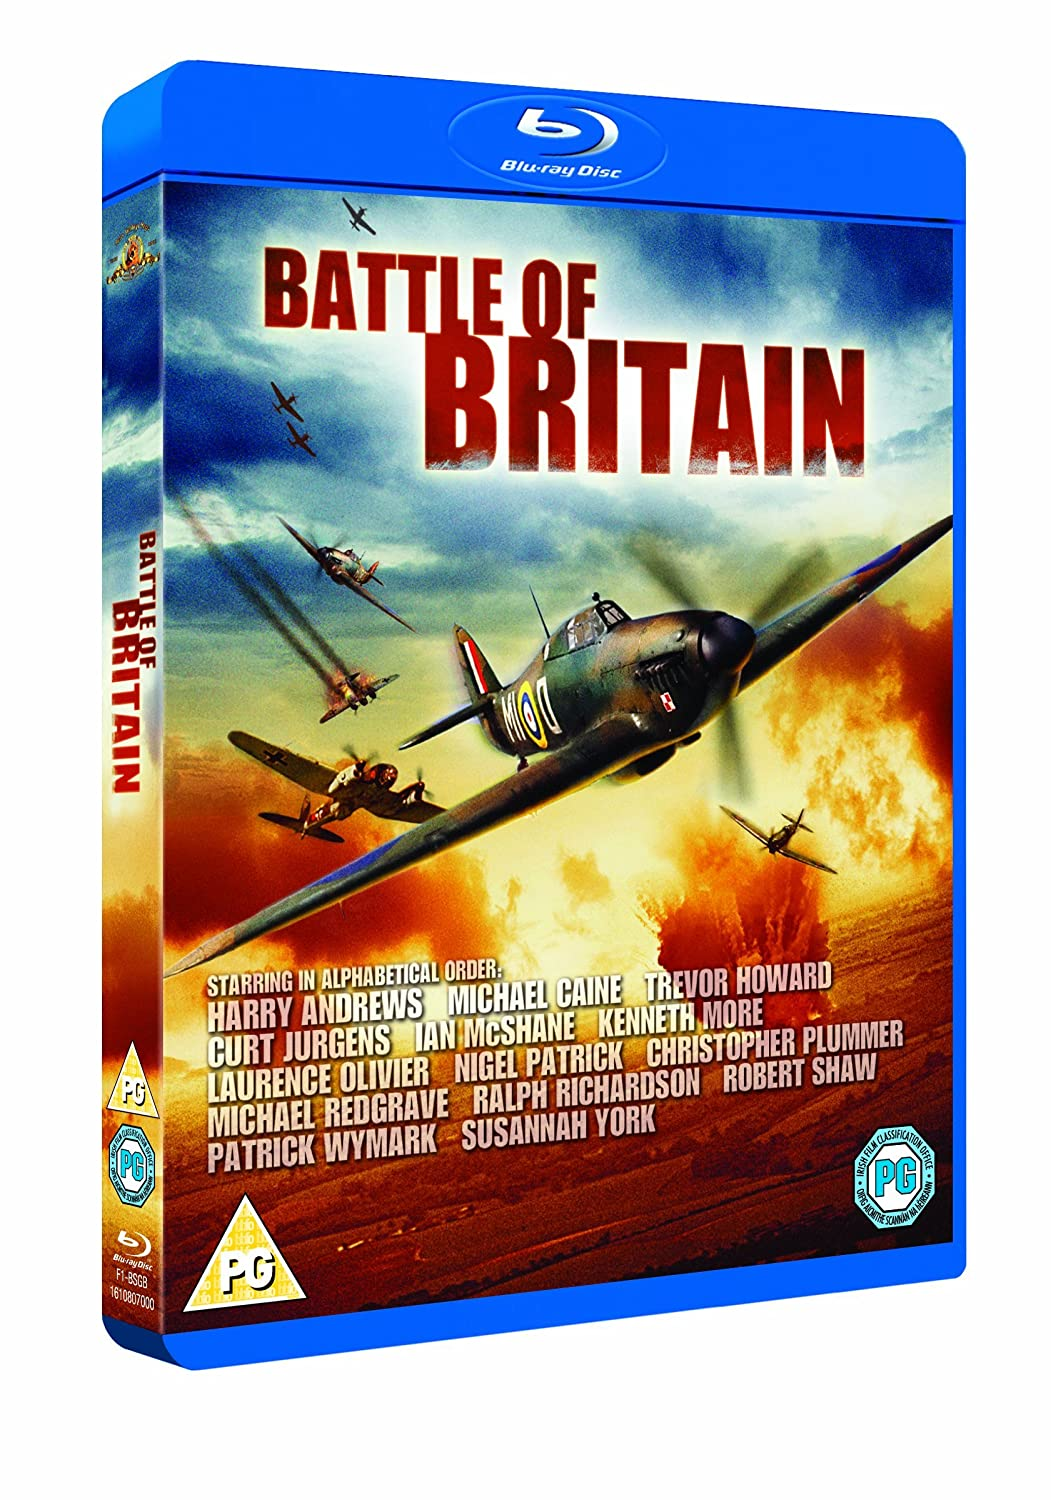 Battle Of Britain BD [Reino Unido] [Blu-ray]: Amazon.es: Battle of Britain: Cine y Series TV